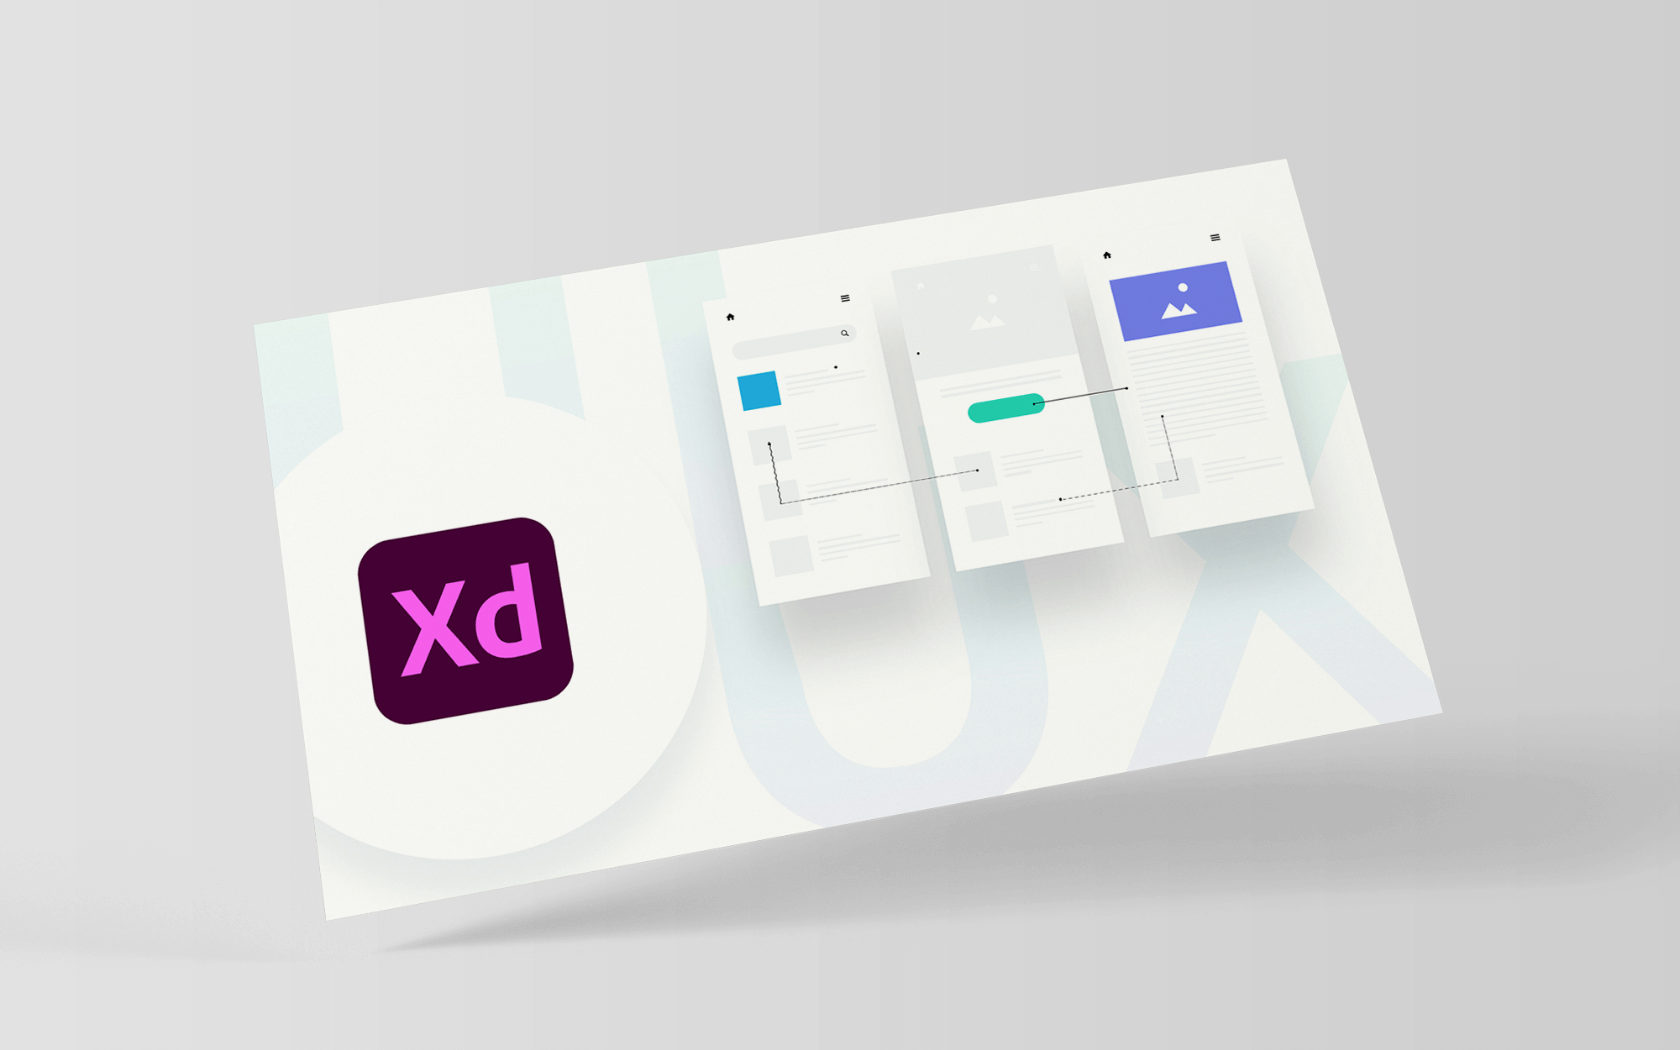 Adobe XD Prototyping and Collaboration